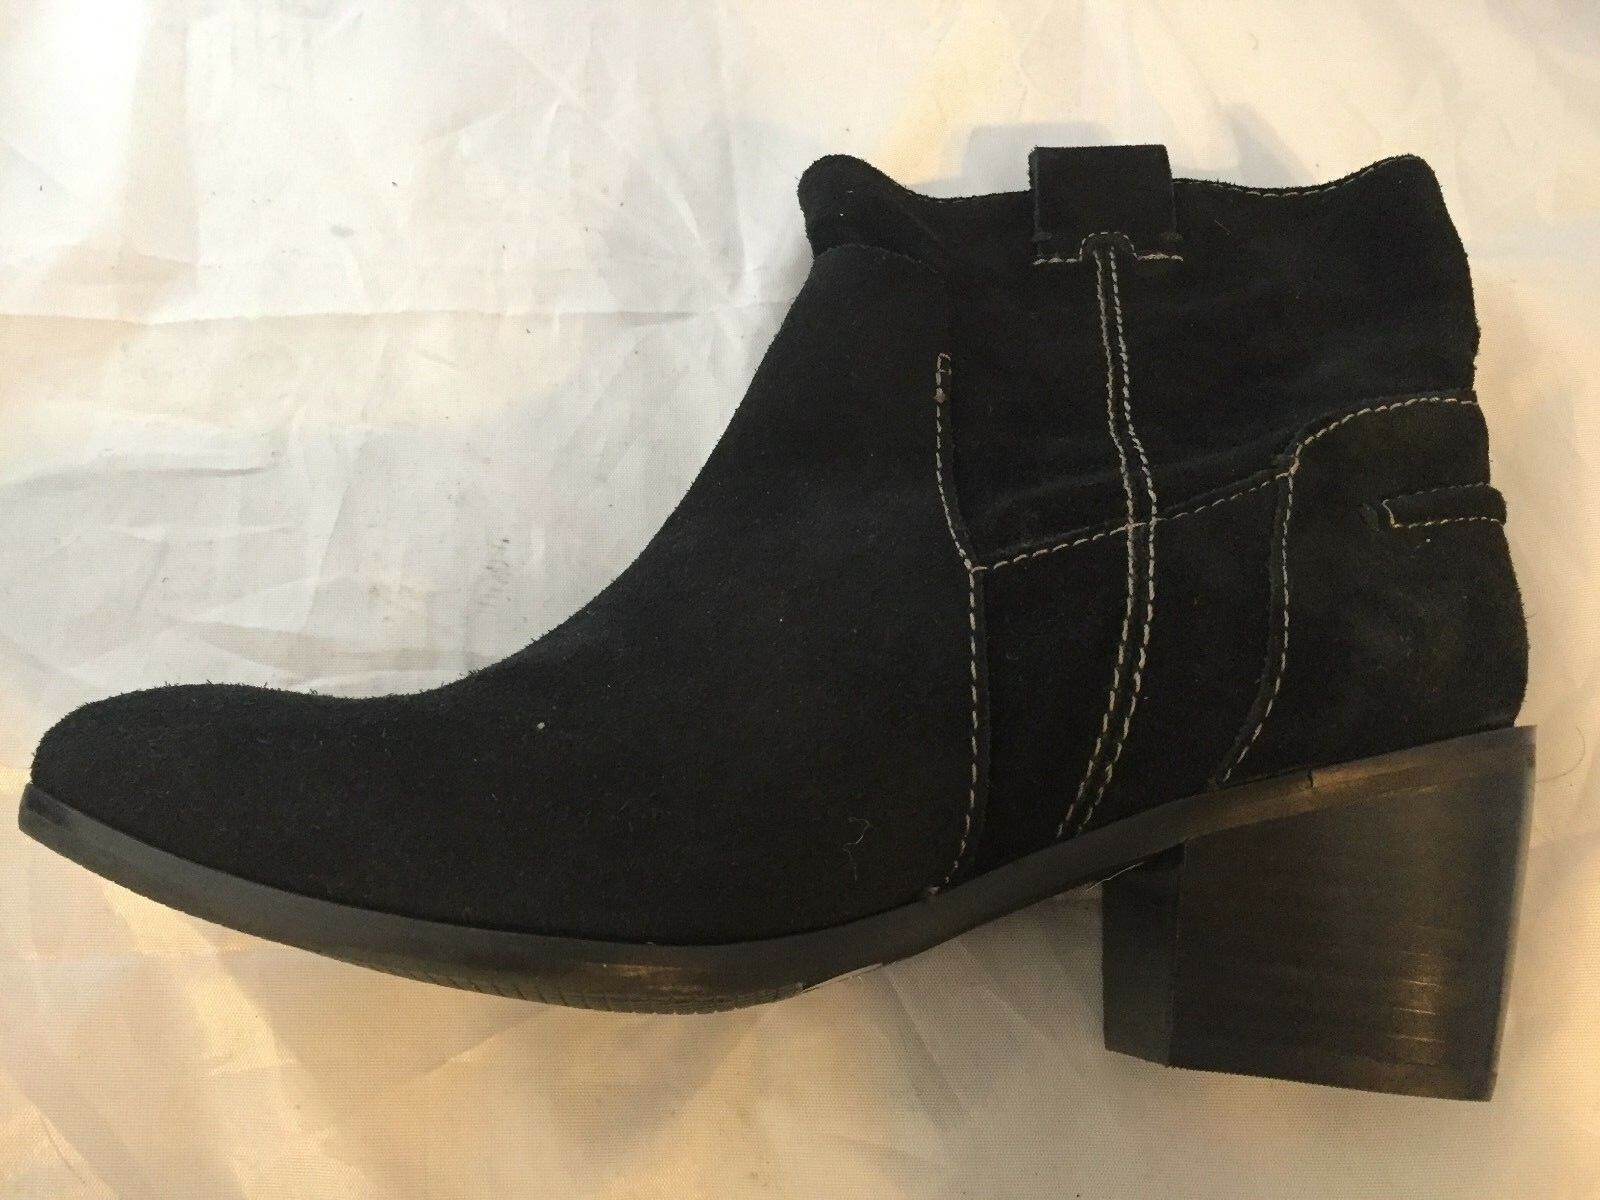 NEW Vince Camuto Black Maves Black Camuto Suede Western Ankle Bootie, Women Size 8.5, $159 e58dbc